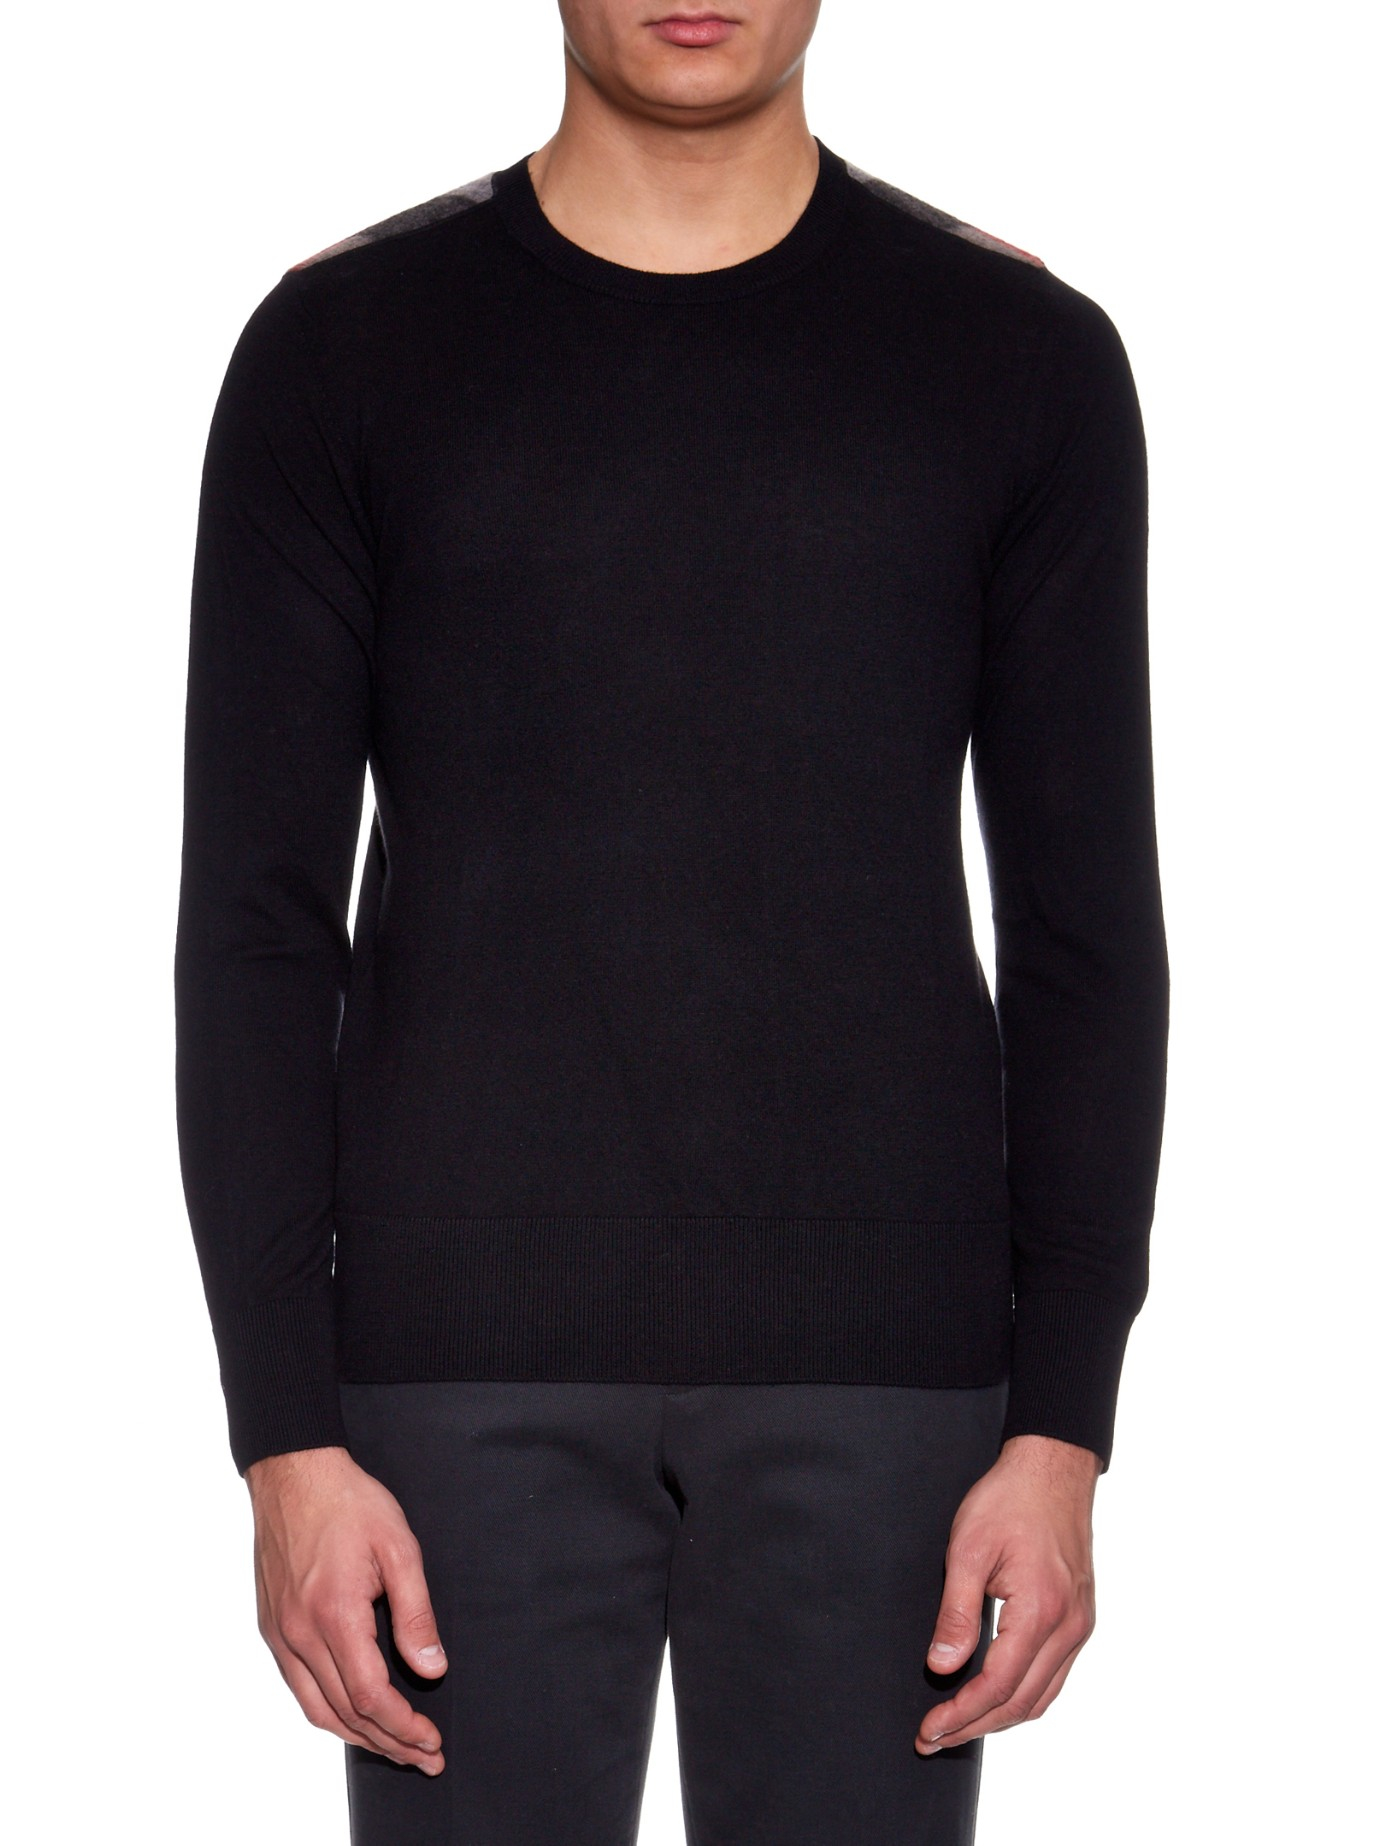 91bae1de5d3c Burberry Brit Jarvis Cashmere And Cotton-blend Sweater in Black for ...